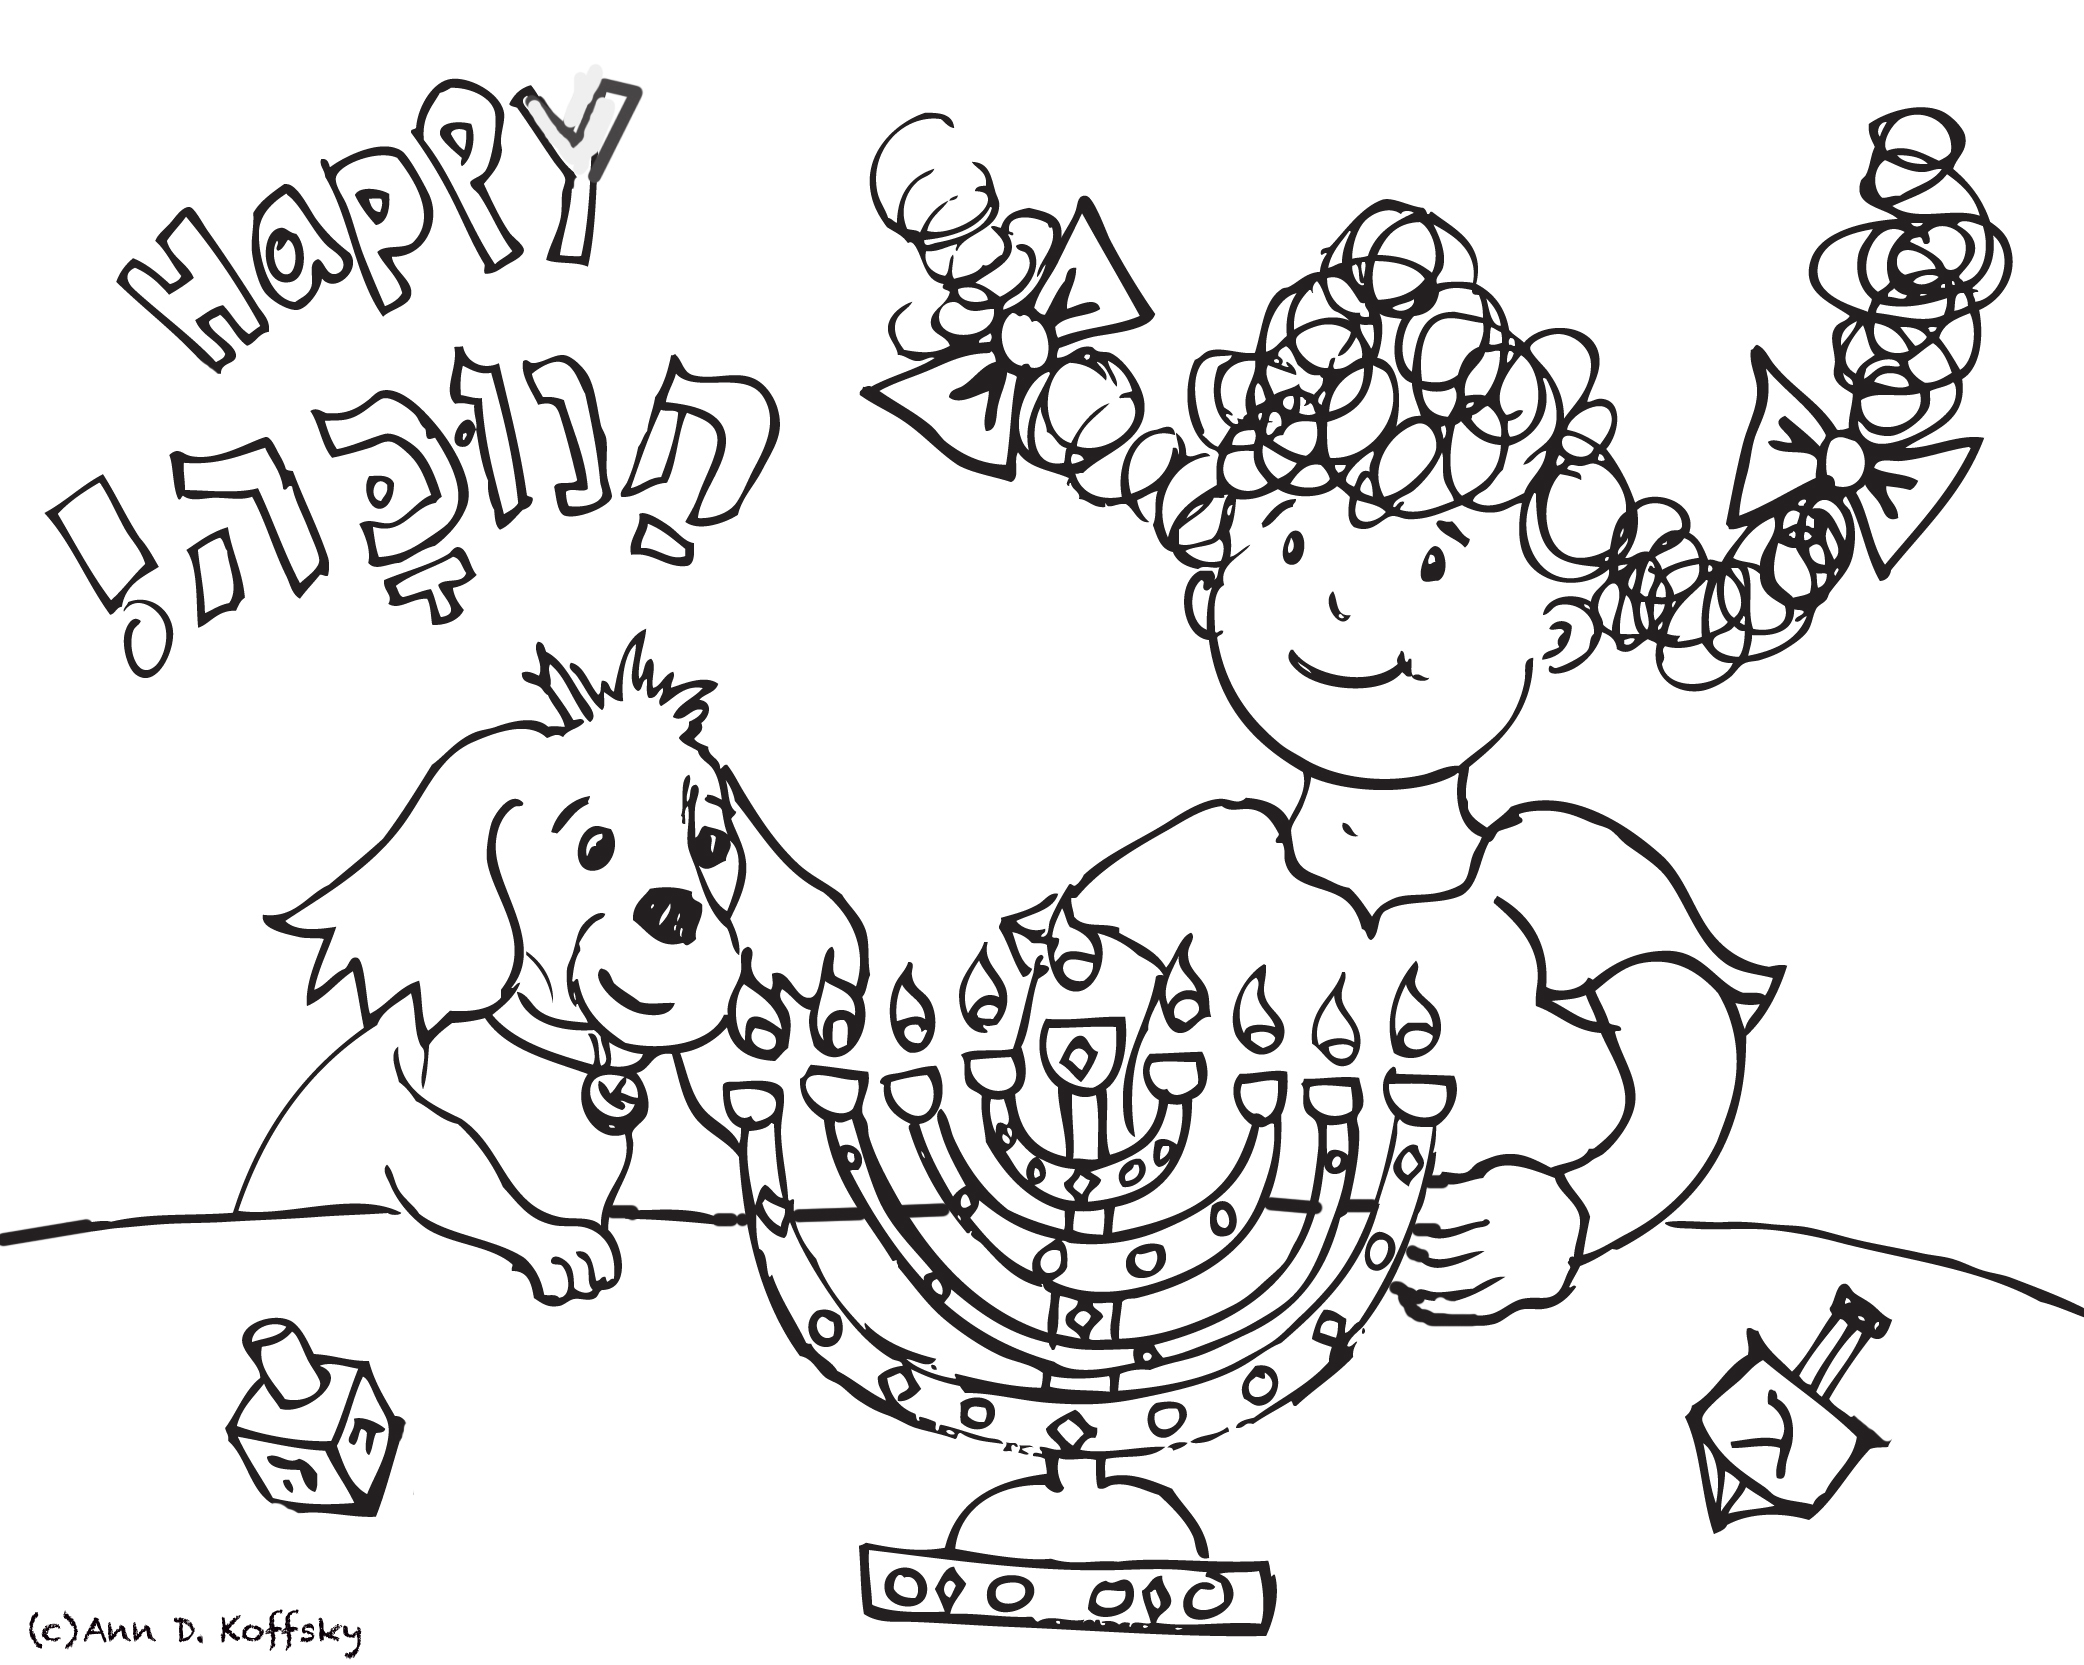 Hanukkah pages to color - Kayla Kugel Want To Wish You And The Kids You Know A Very Happy Hanukkah Just Click On The Image Below And Print